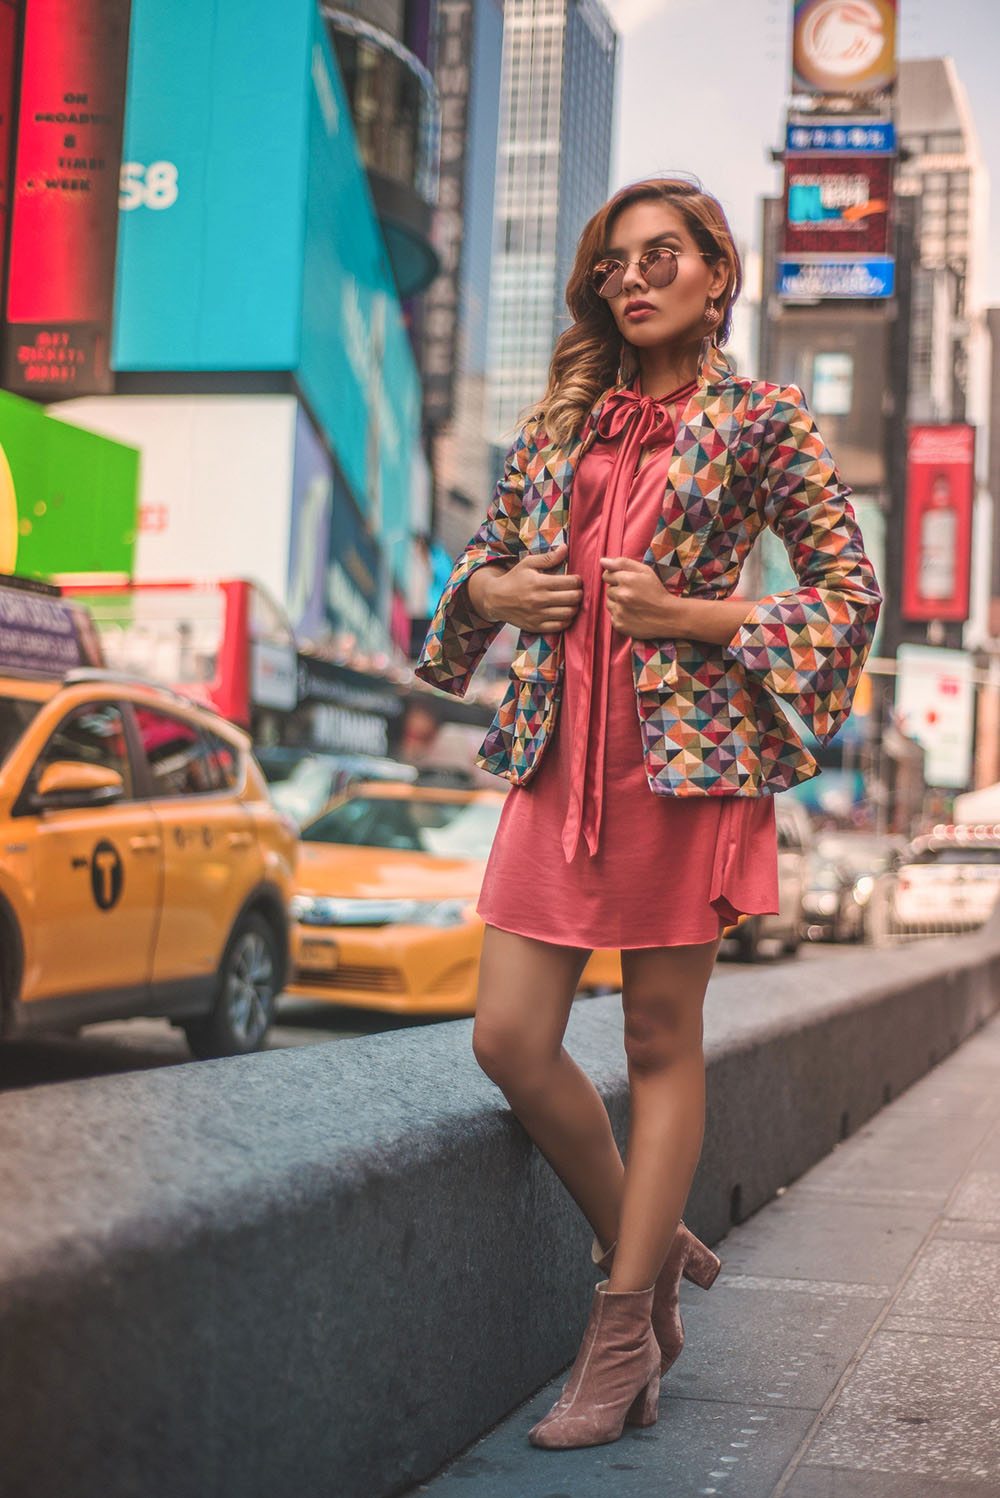 Time Square Fashion Photography